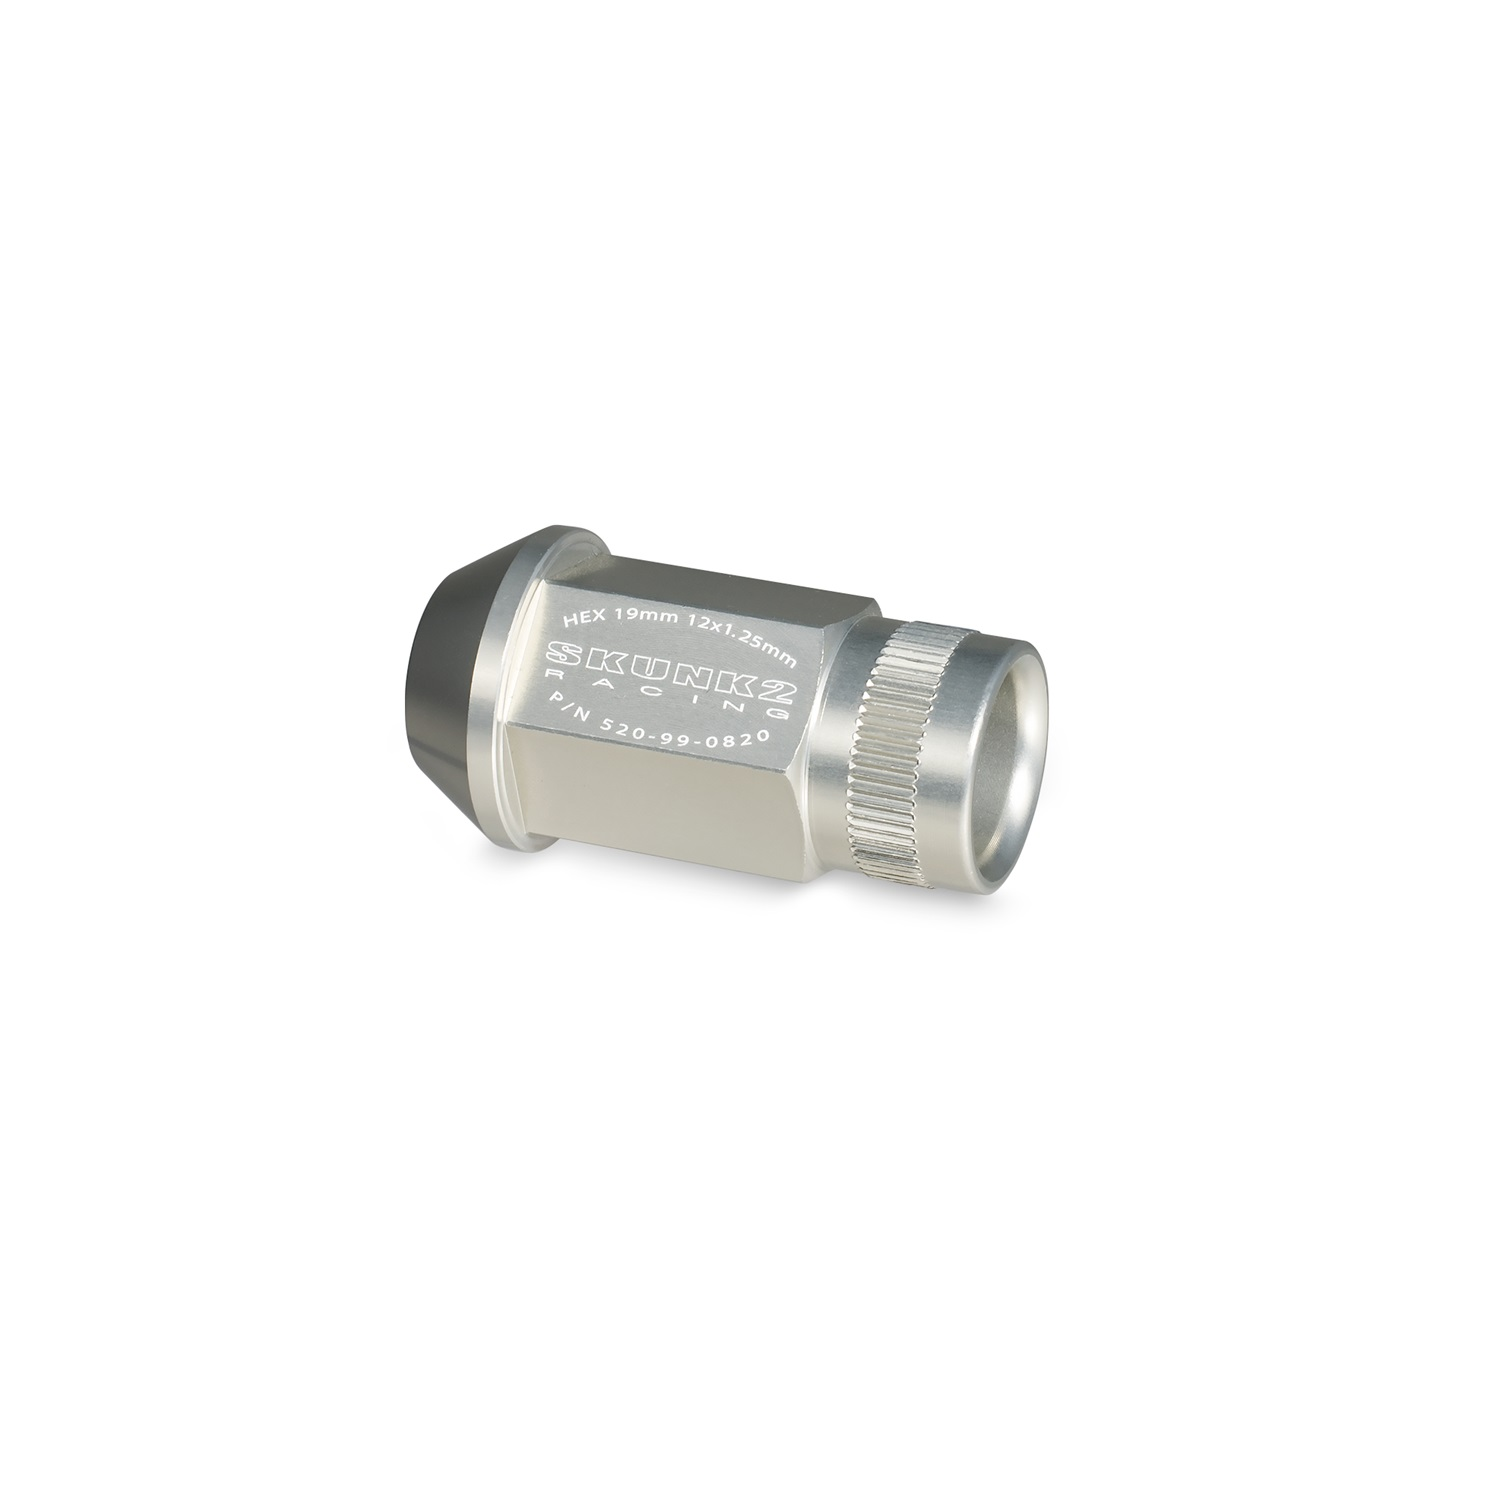 Skunk2 Racing 520-99-0821 Lug Nut